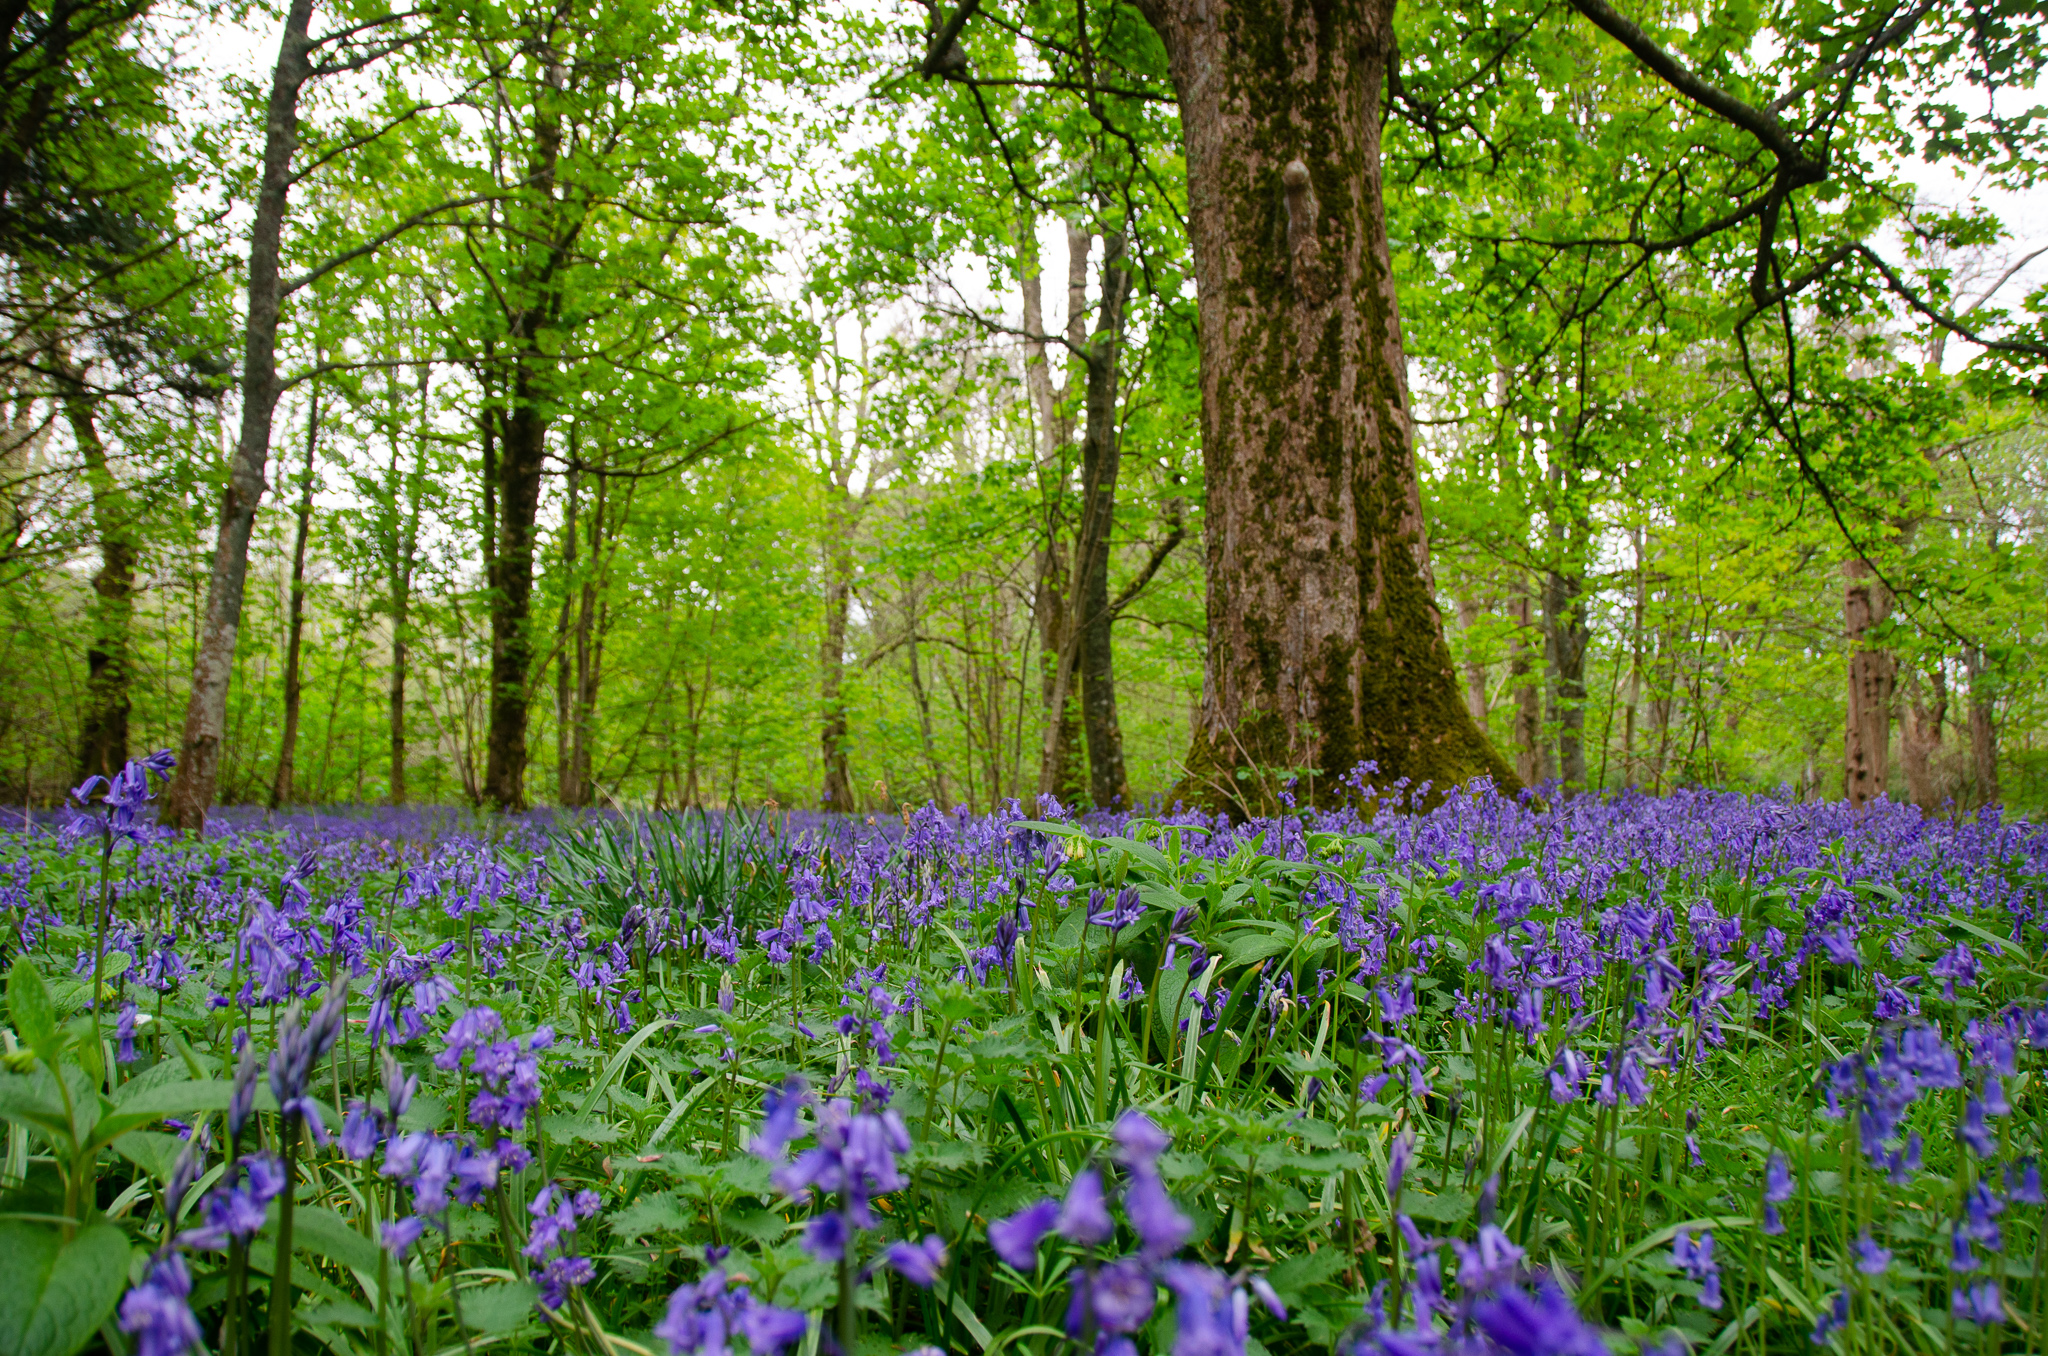 Bluebell woods in full bloom-Islay House Grounds